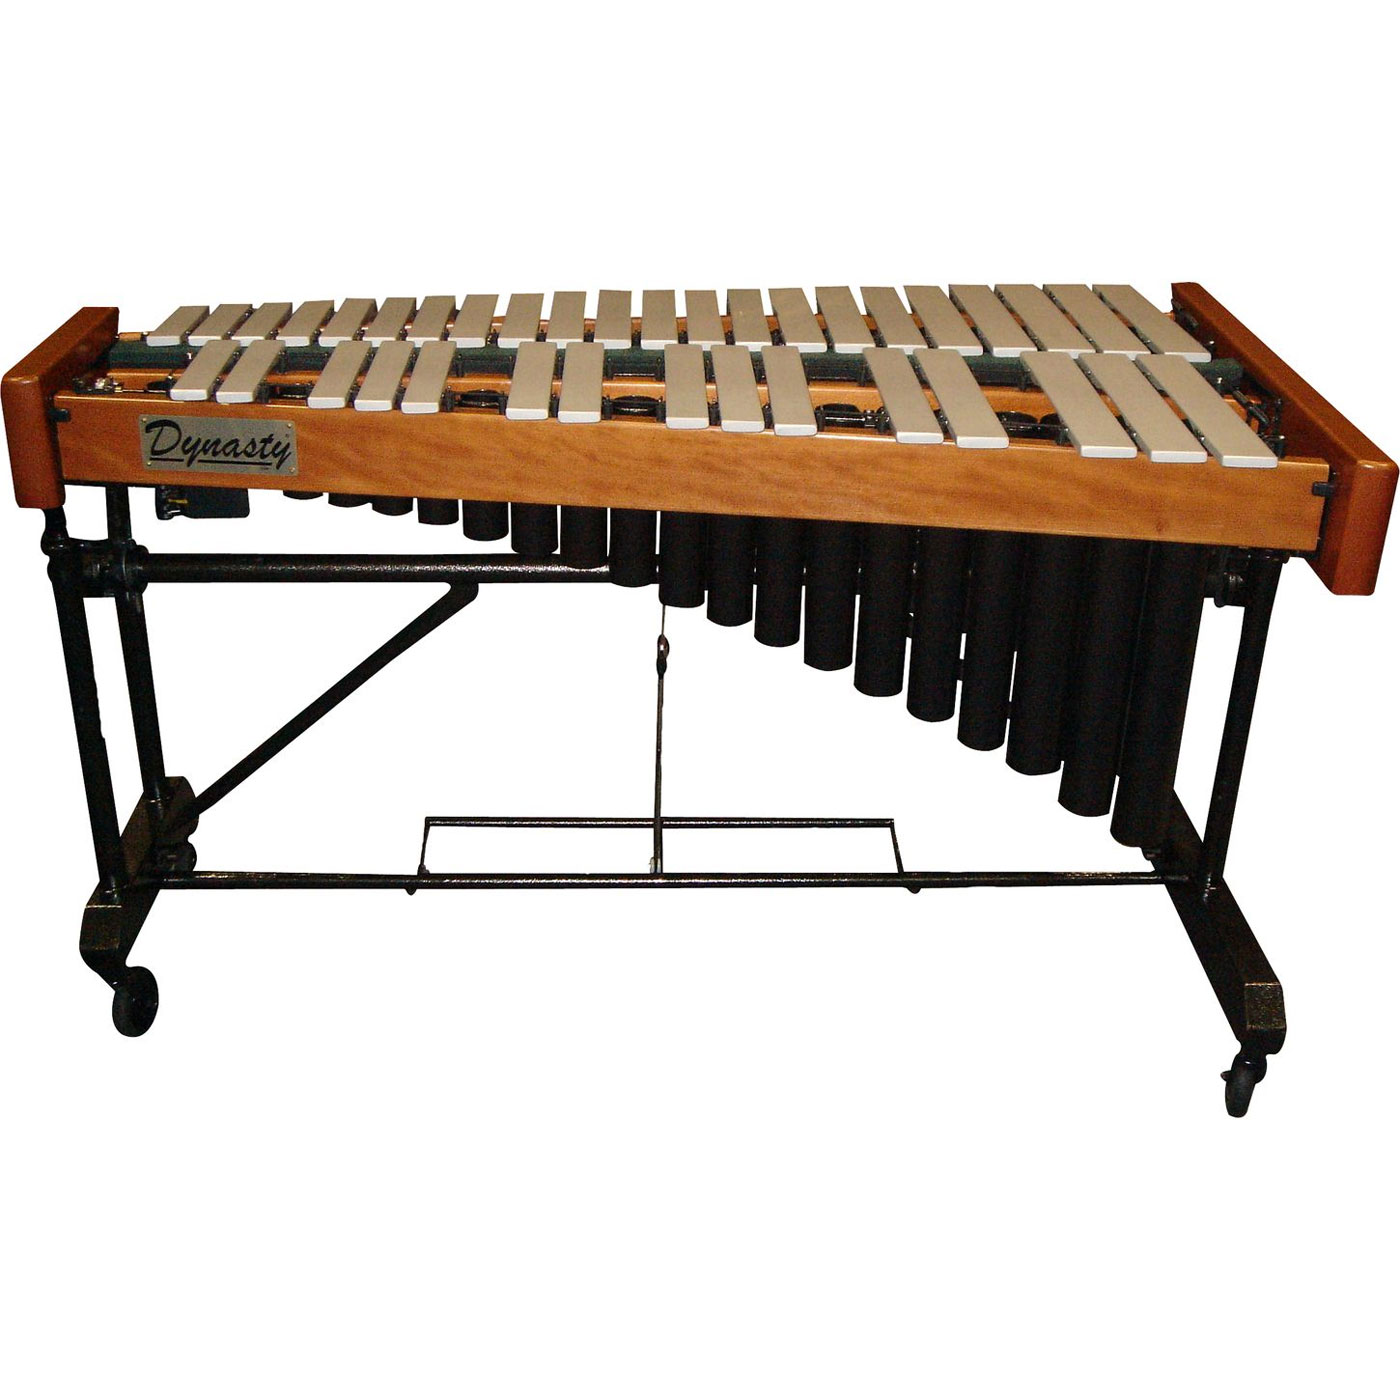 Bergerault 3.0 Signature Vibraphone, Graduated Matte Silver Bars with Motor and Signature Frame with cover